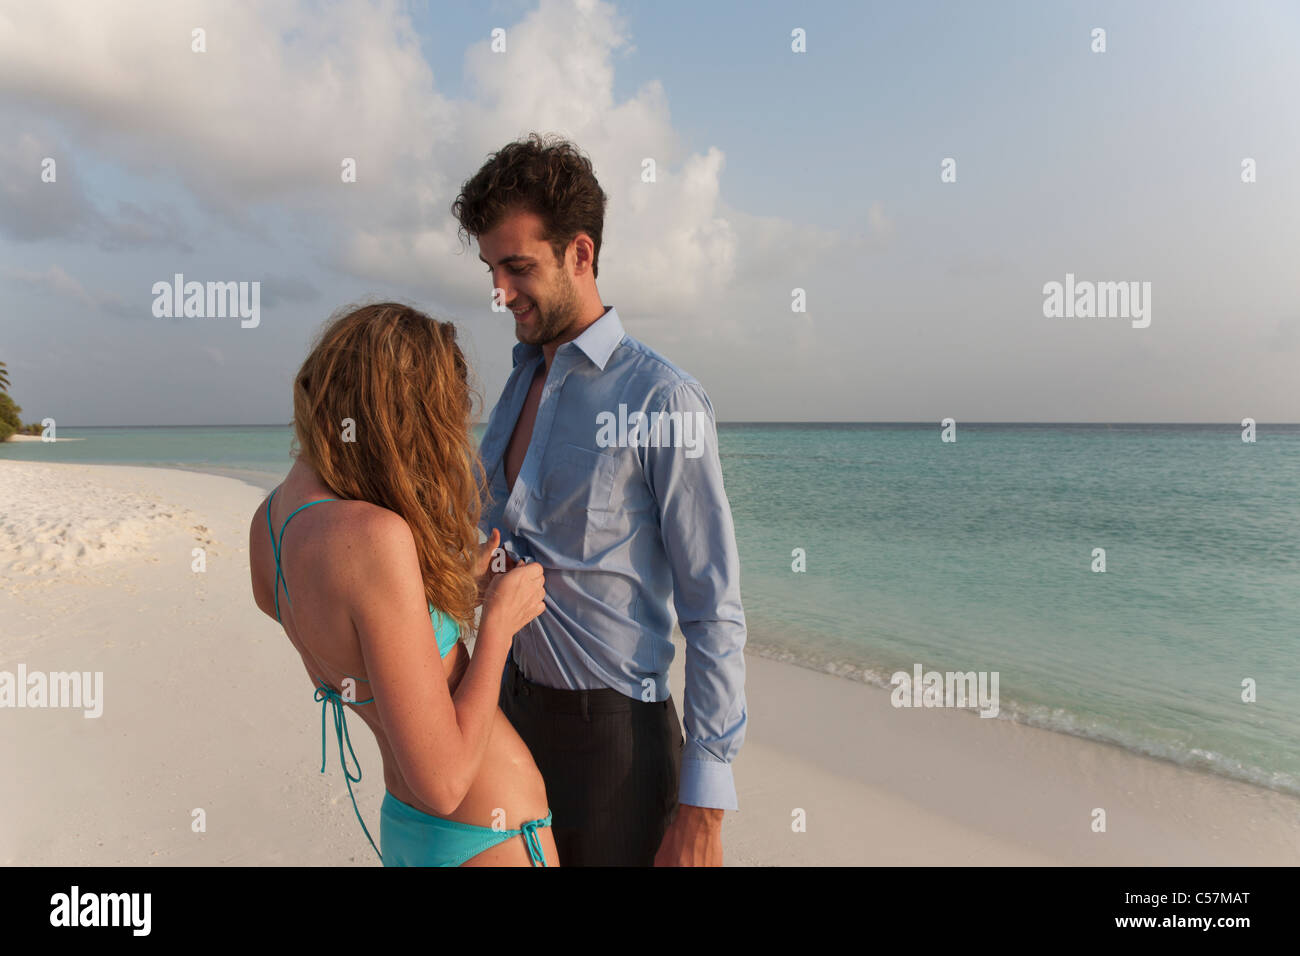 Woman undressing businessman on beach - Stock Image